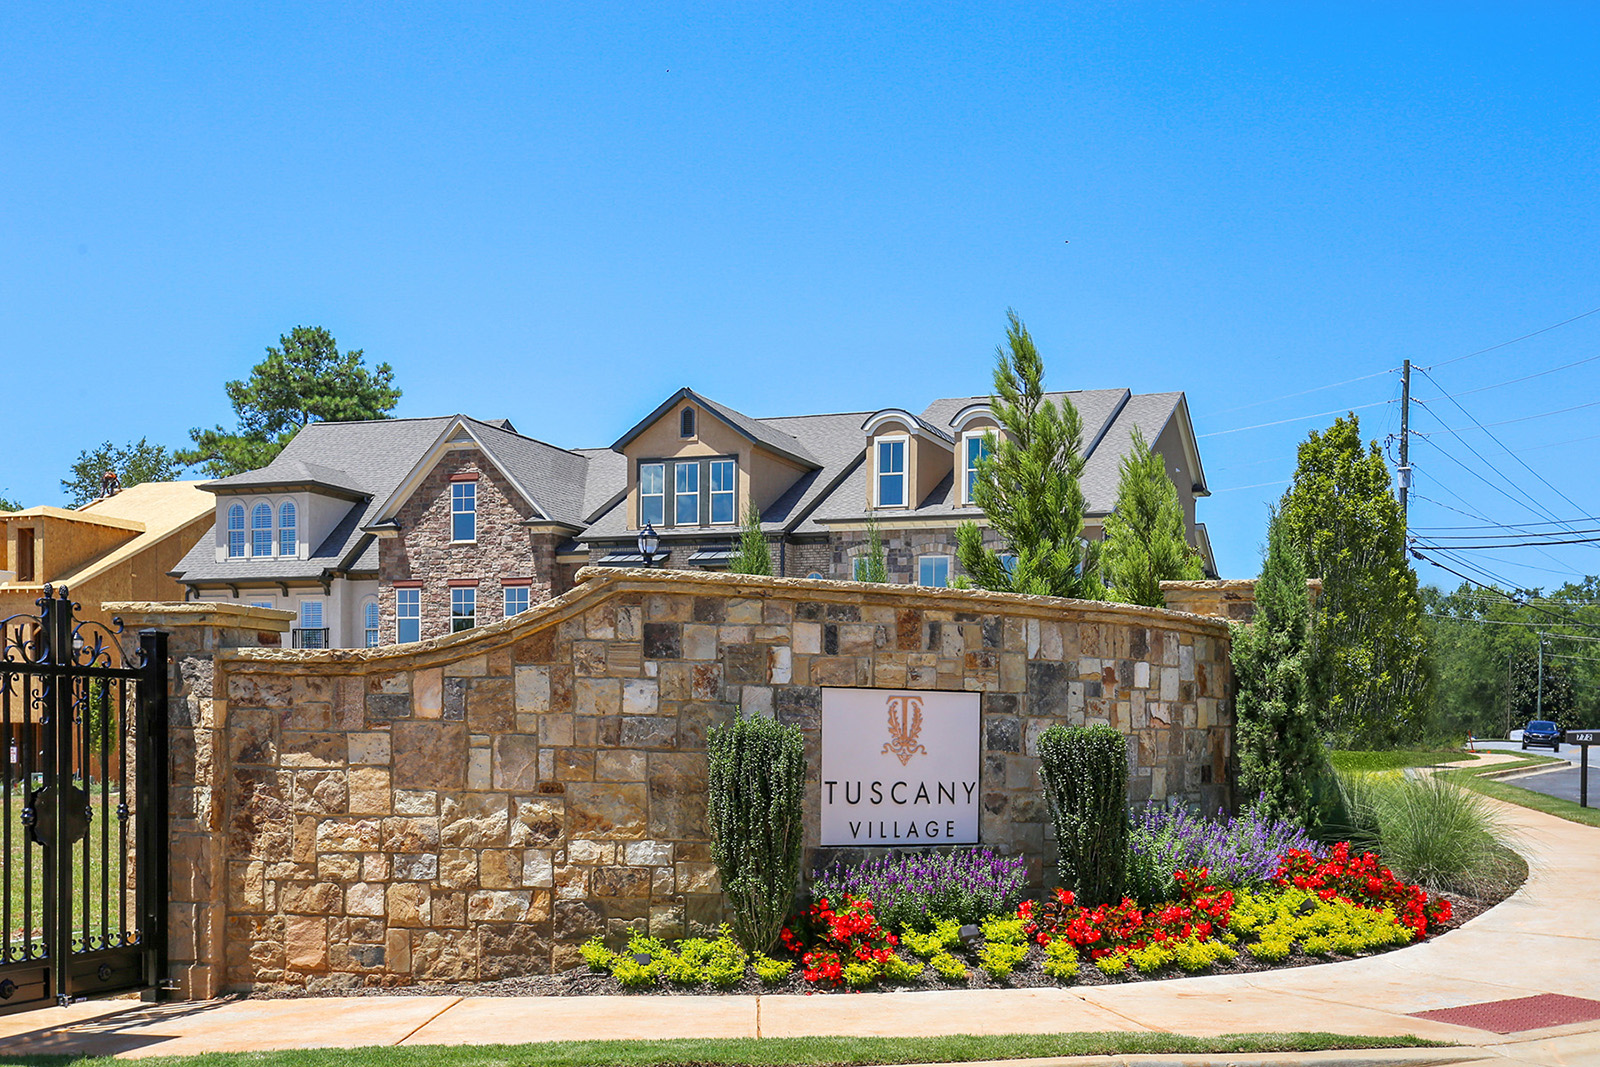 Tuscany Village | Social Media Management by Clementine Creative Agency | Woodstock, GA